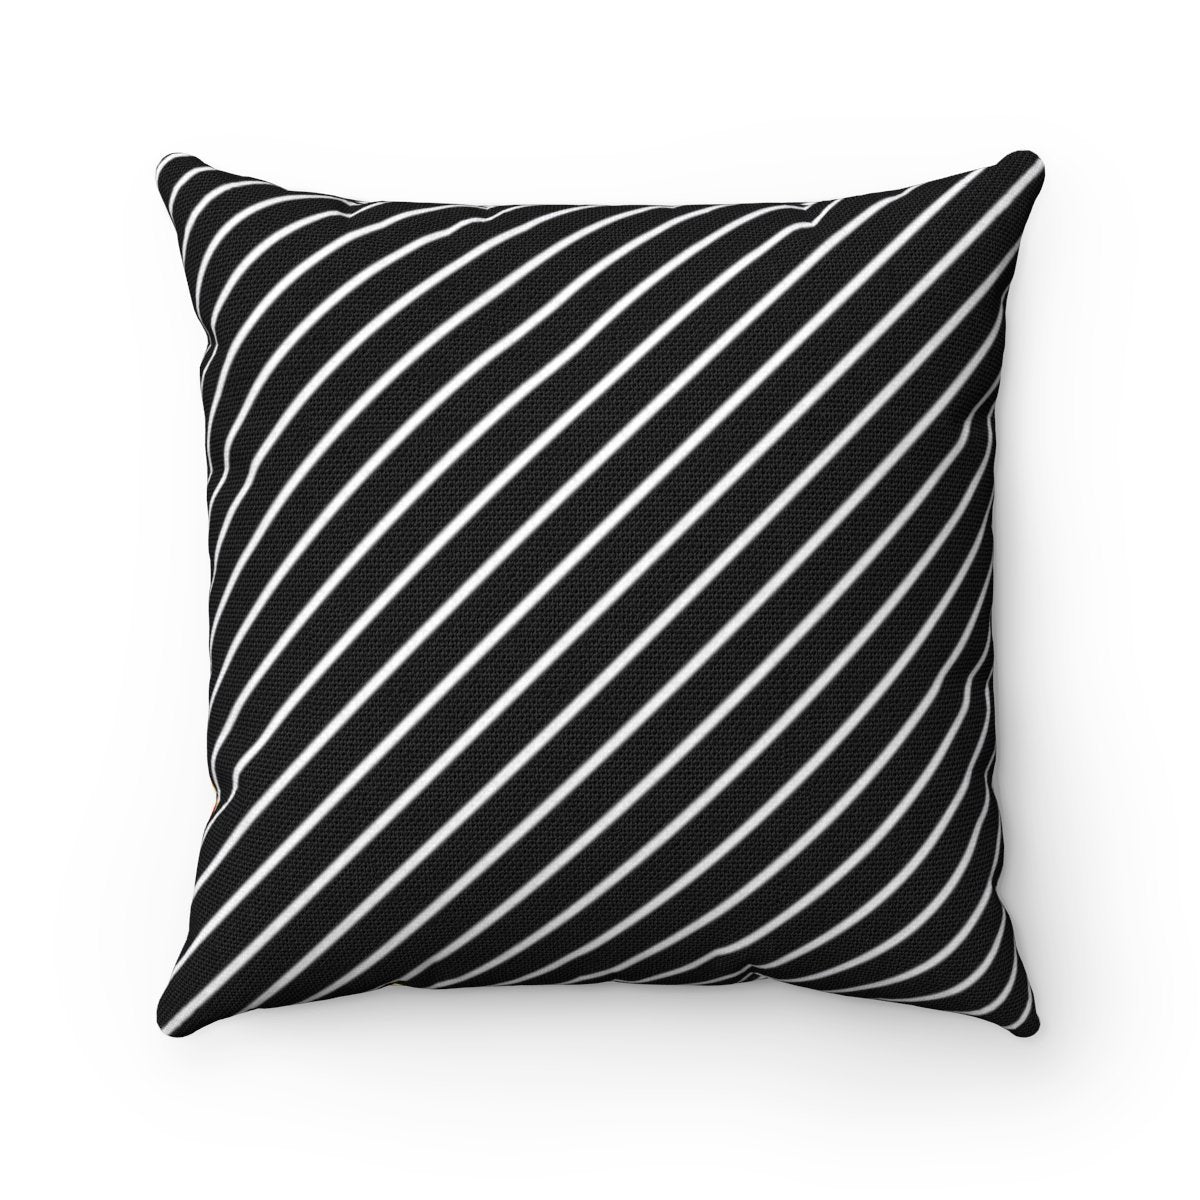 Paris | Love | mon amour | Valentine Striped Floral decorative cushion cover-Home Decor - Decorative Accents - Pillows & Throws - Decorative Pillows-Maison d'Elite-Très Elite